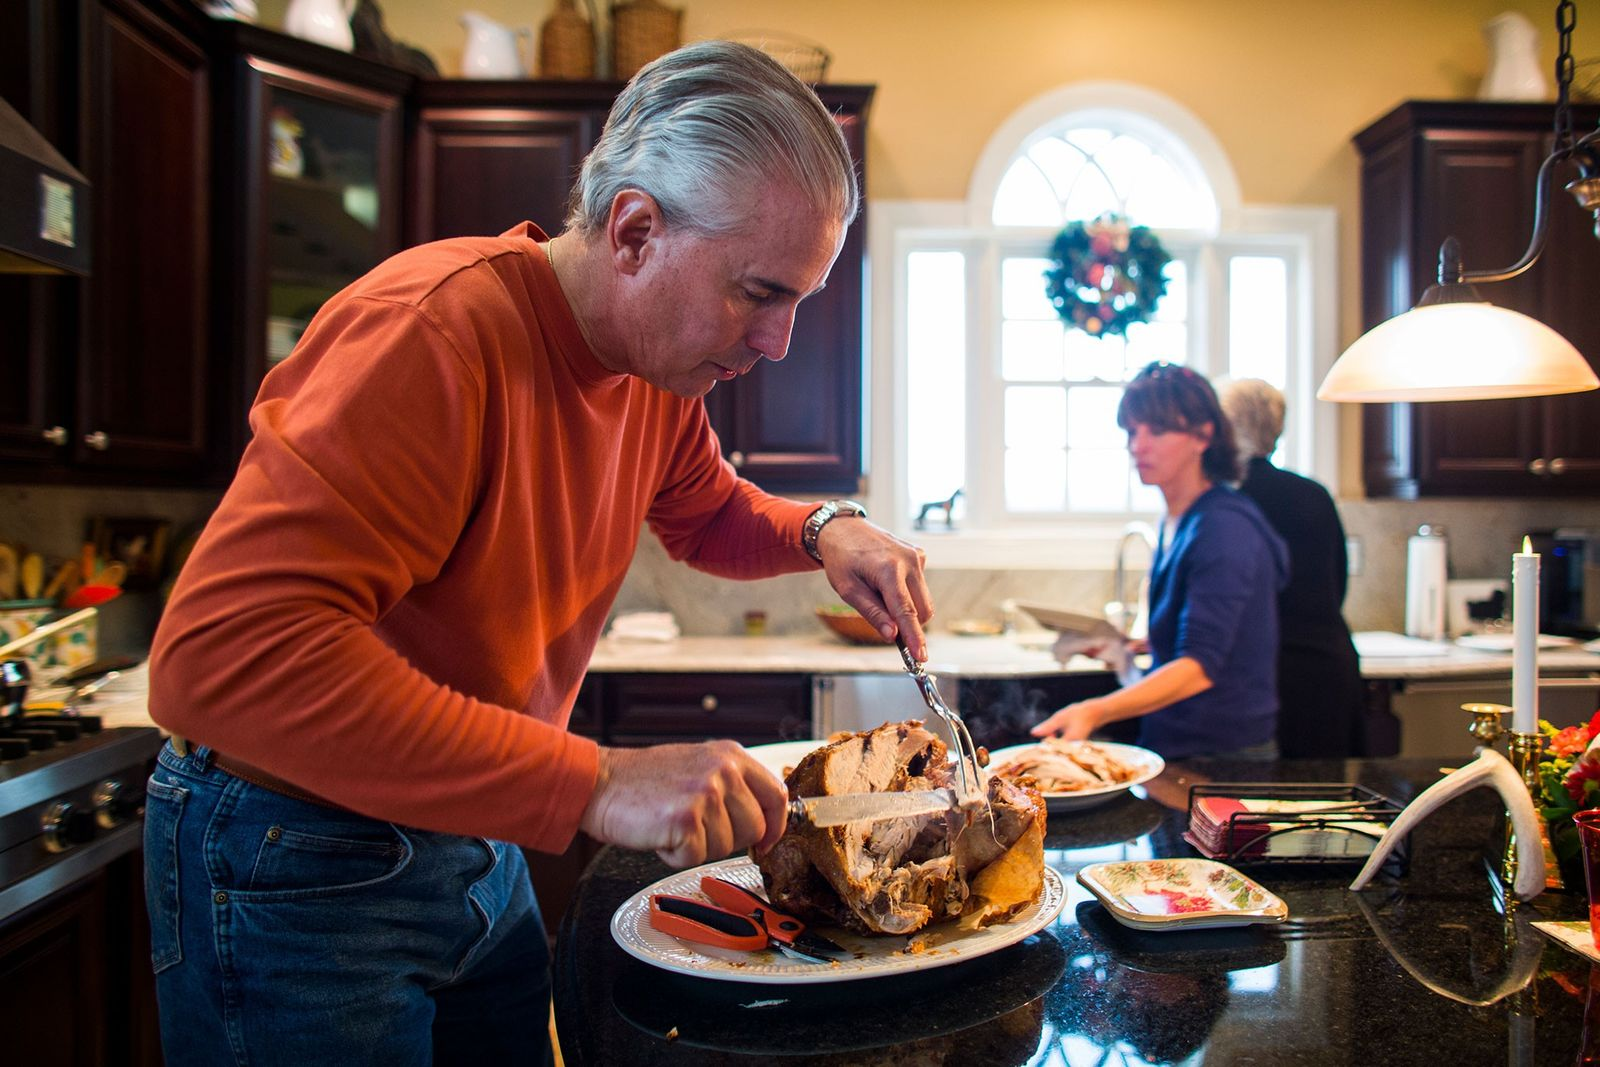 Turkeys can swim—and other fun facts for Christmas dinner